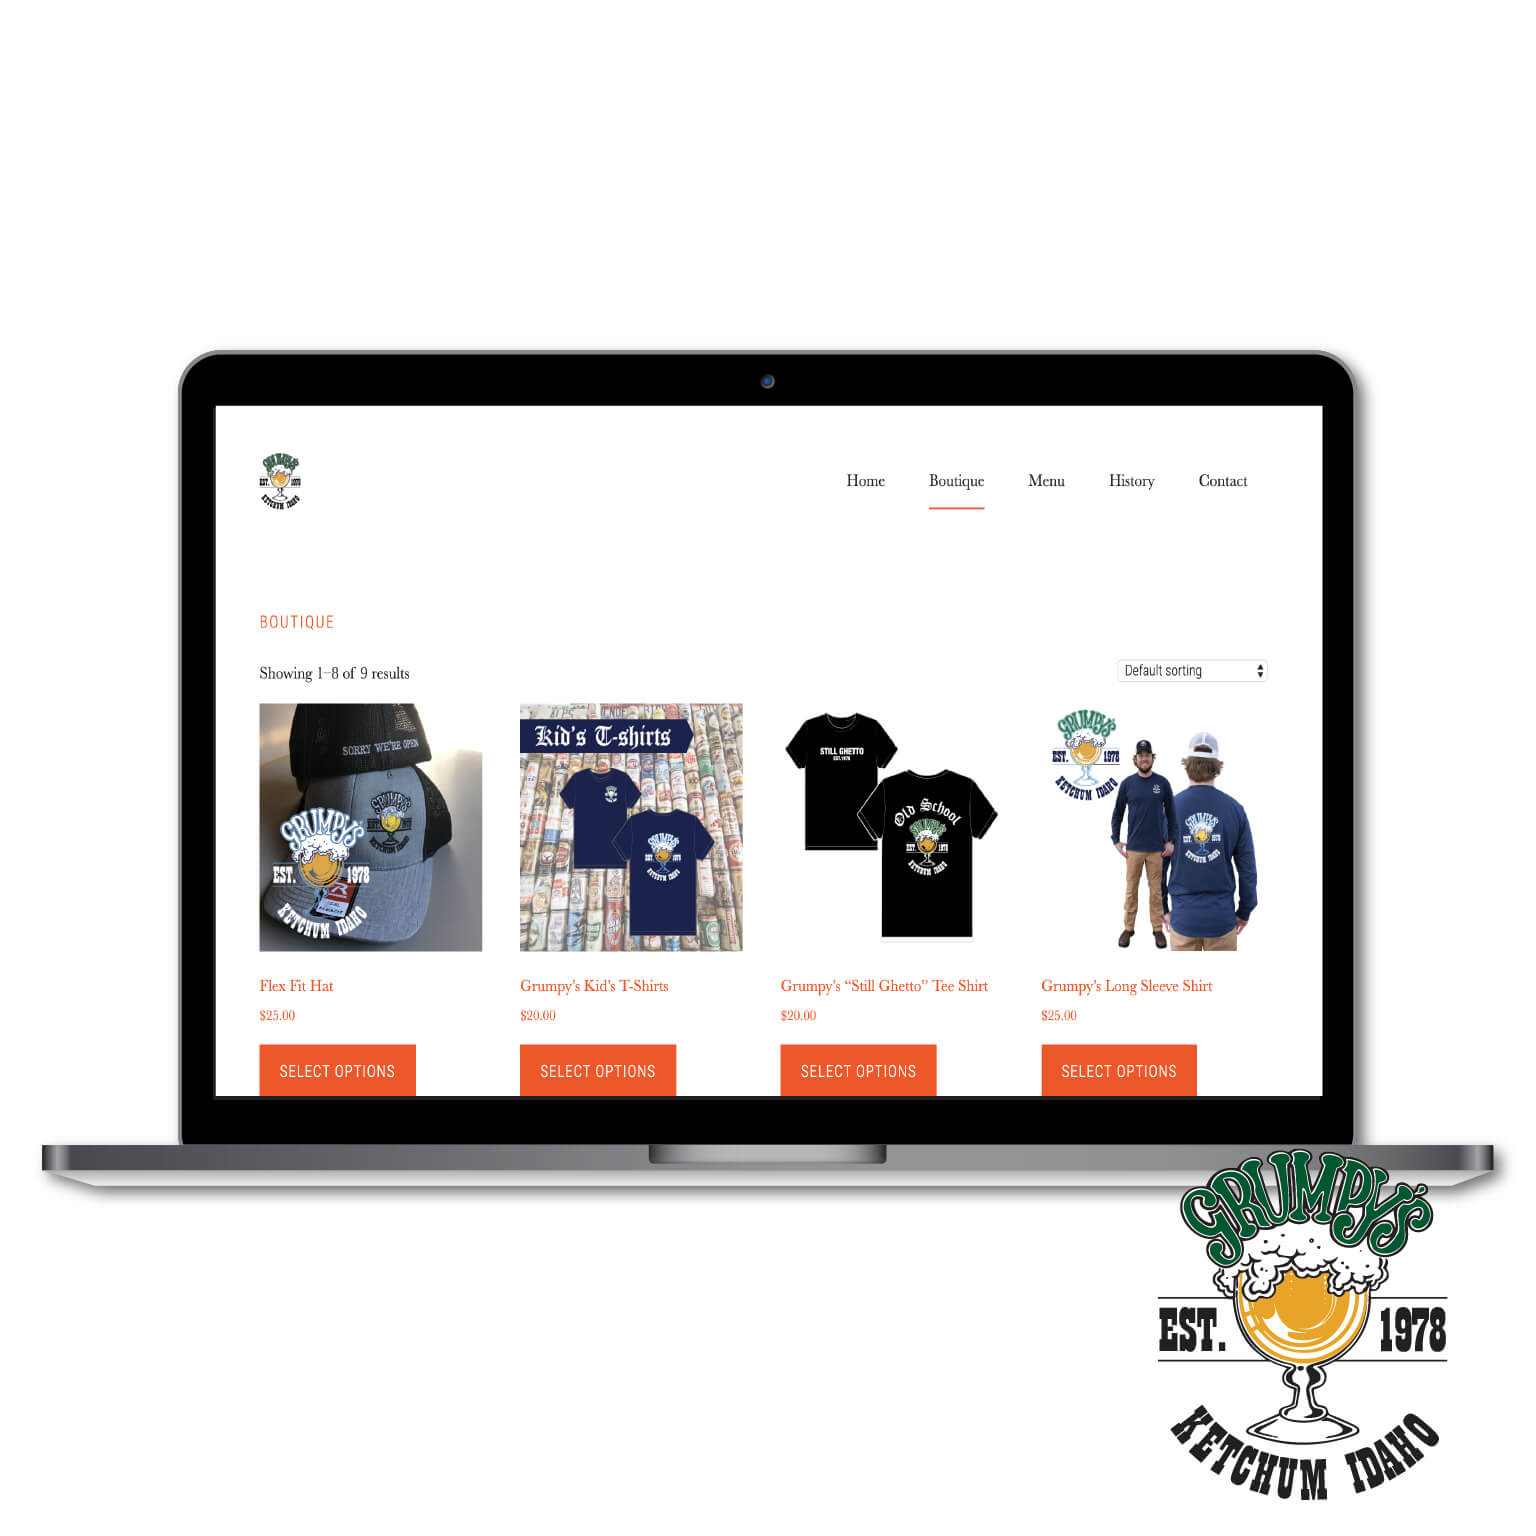 Portfolio | Website Design for Grumpy's displaying a Laptop and their Logo